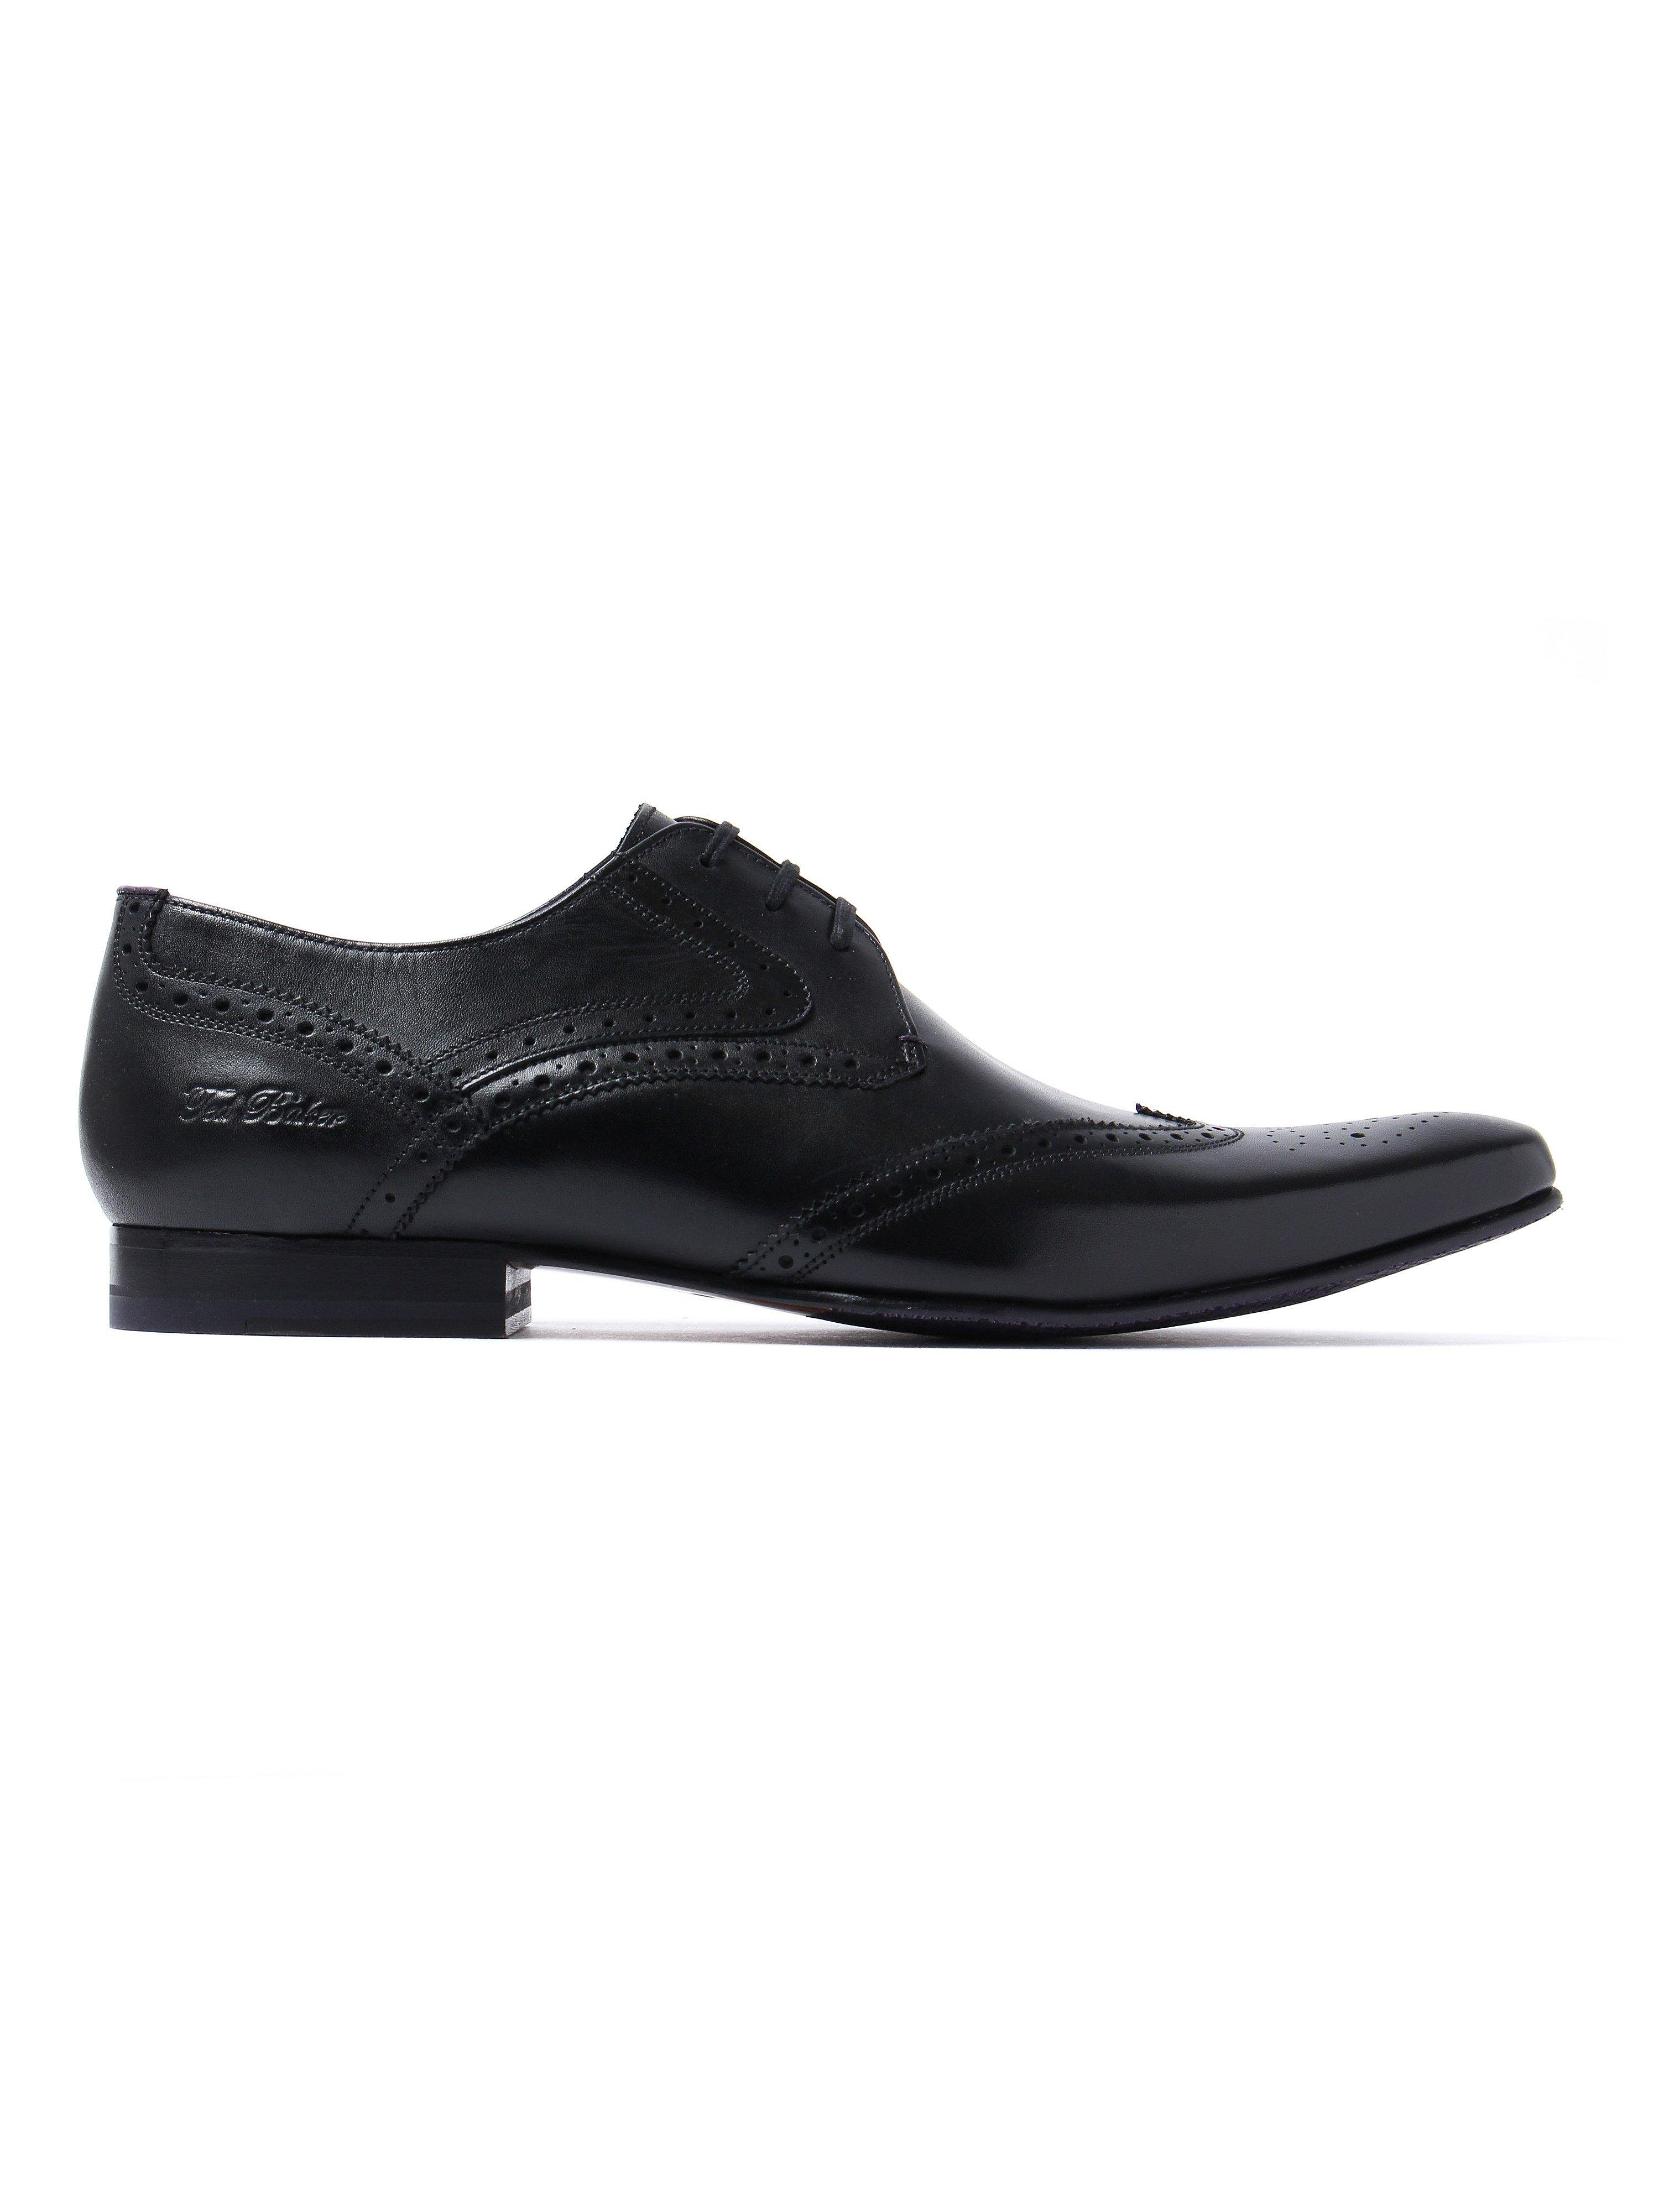 Ted Baker Men's Hann 2 Leather Derby Shoes - Black